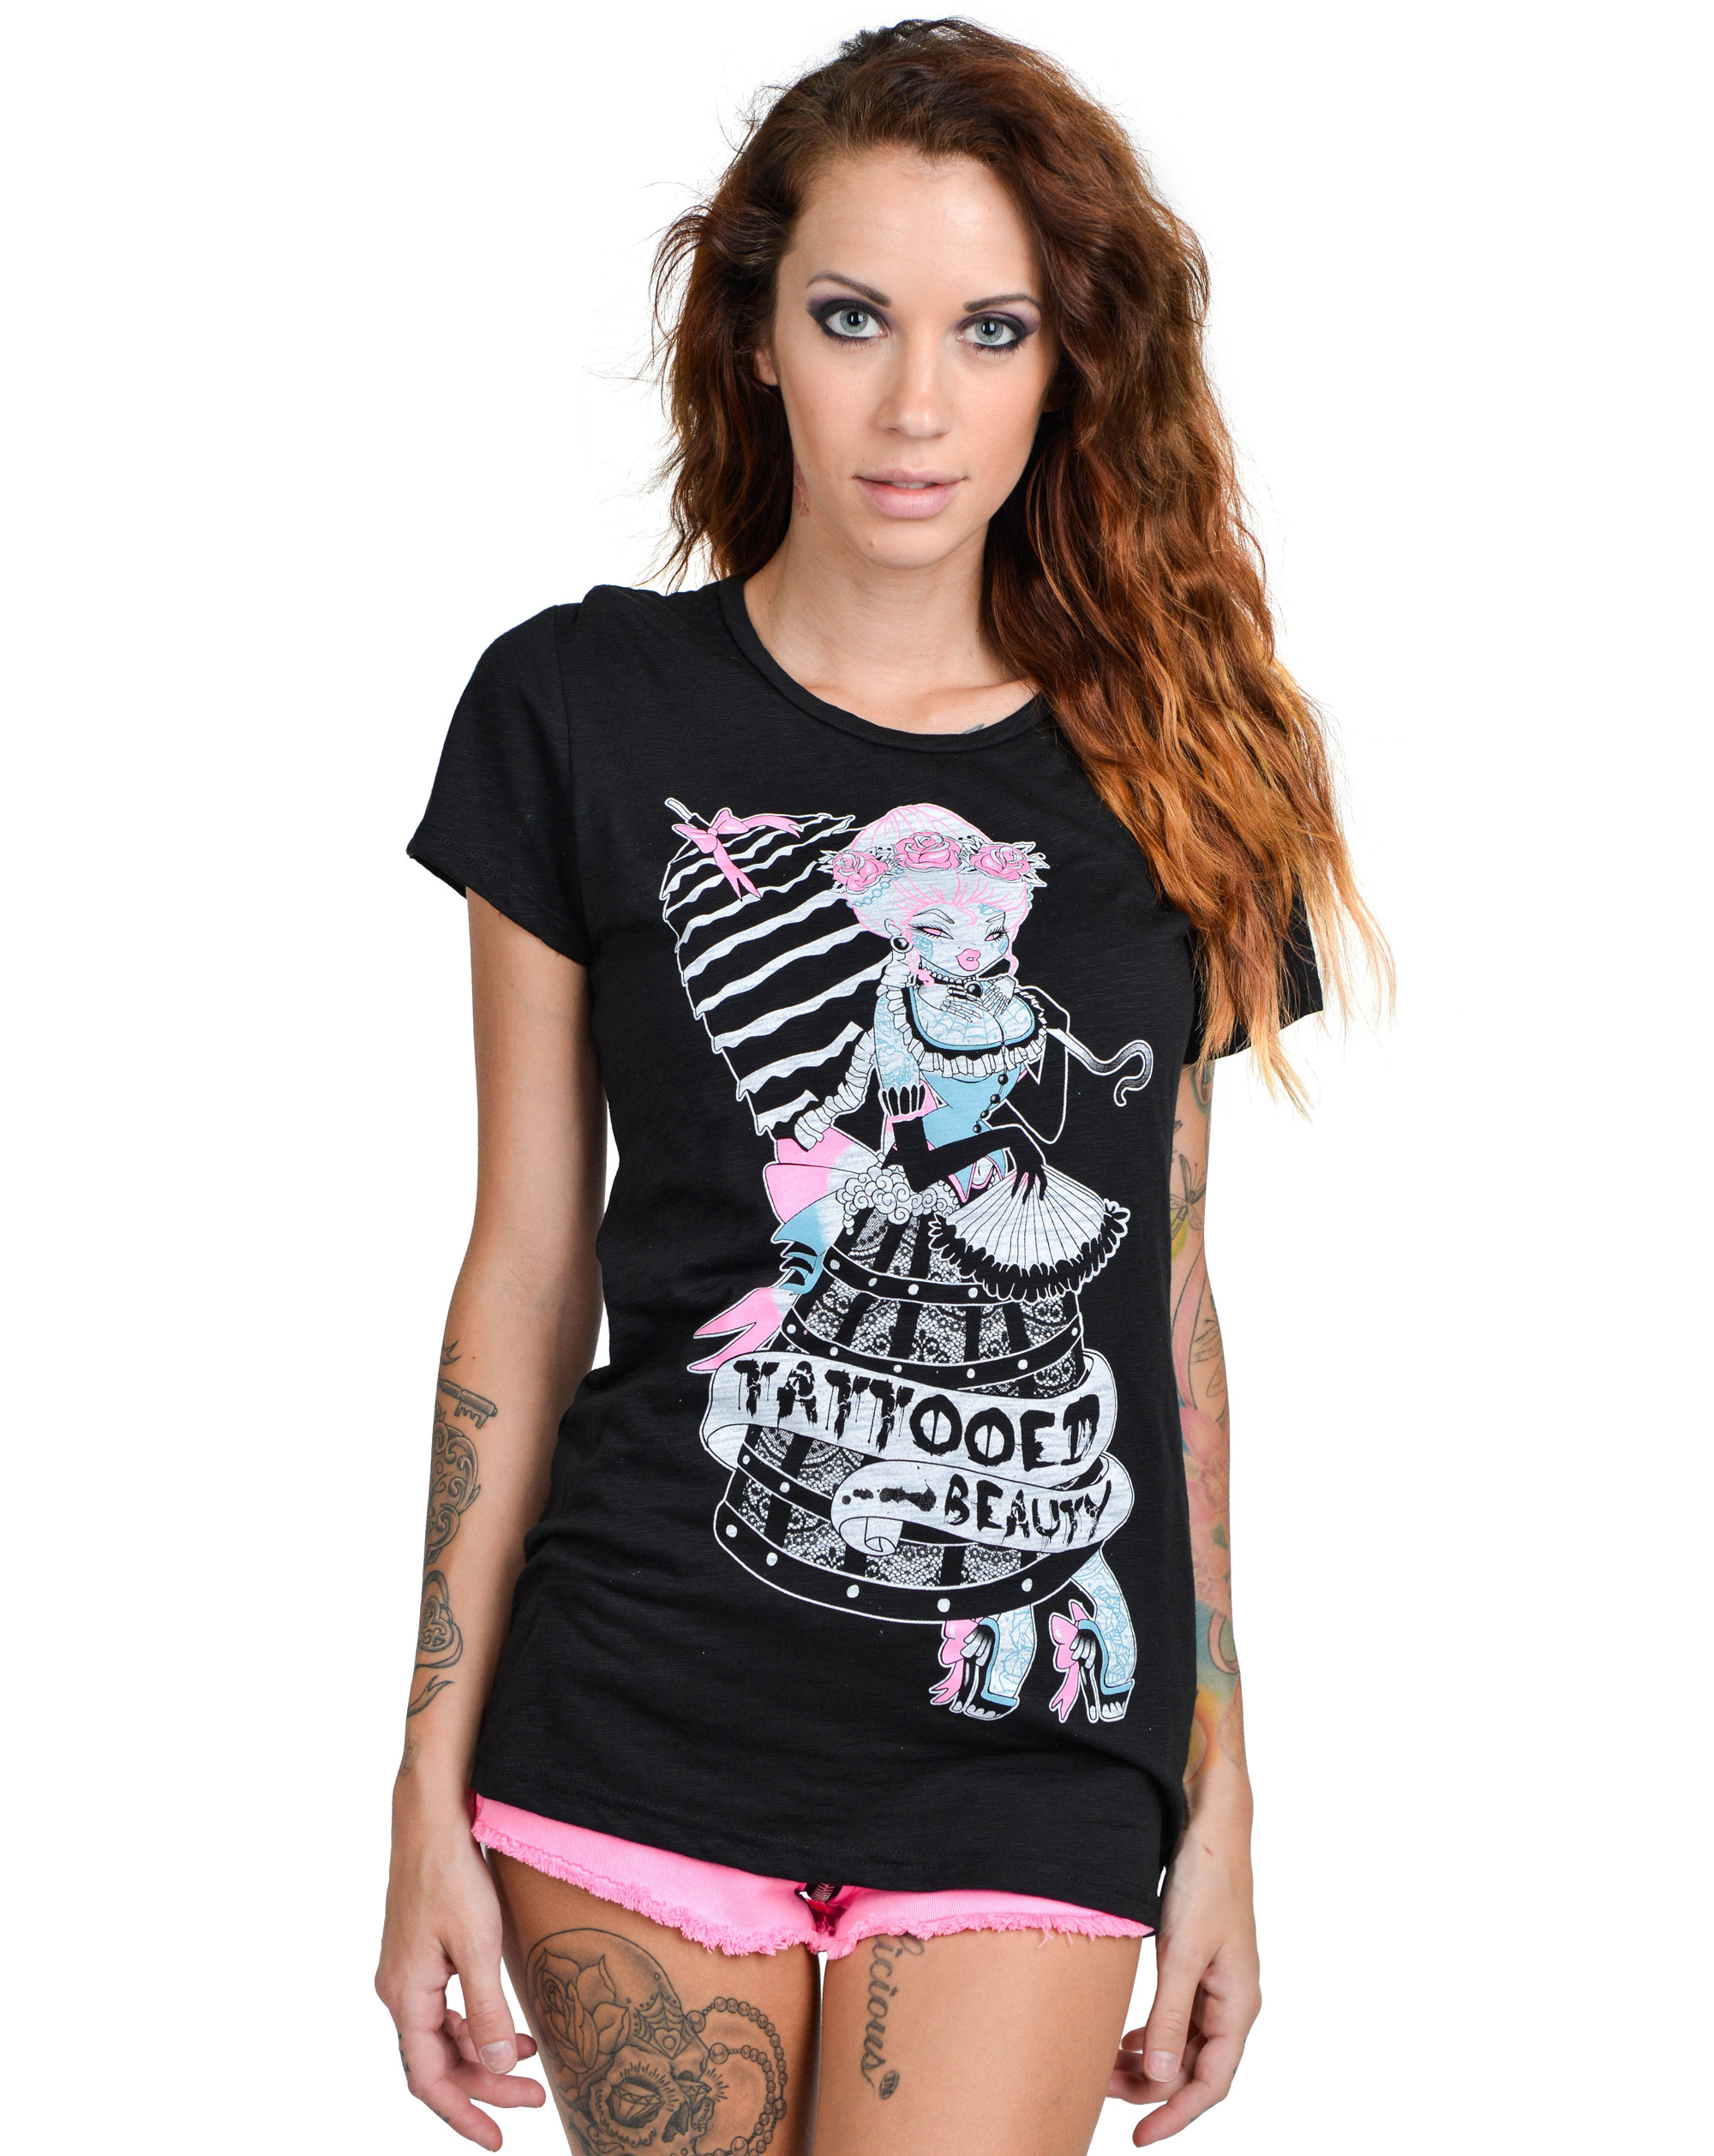 Tattooed Beauty Tee